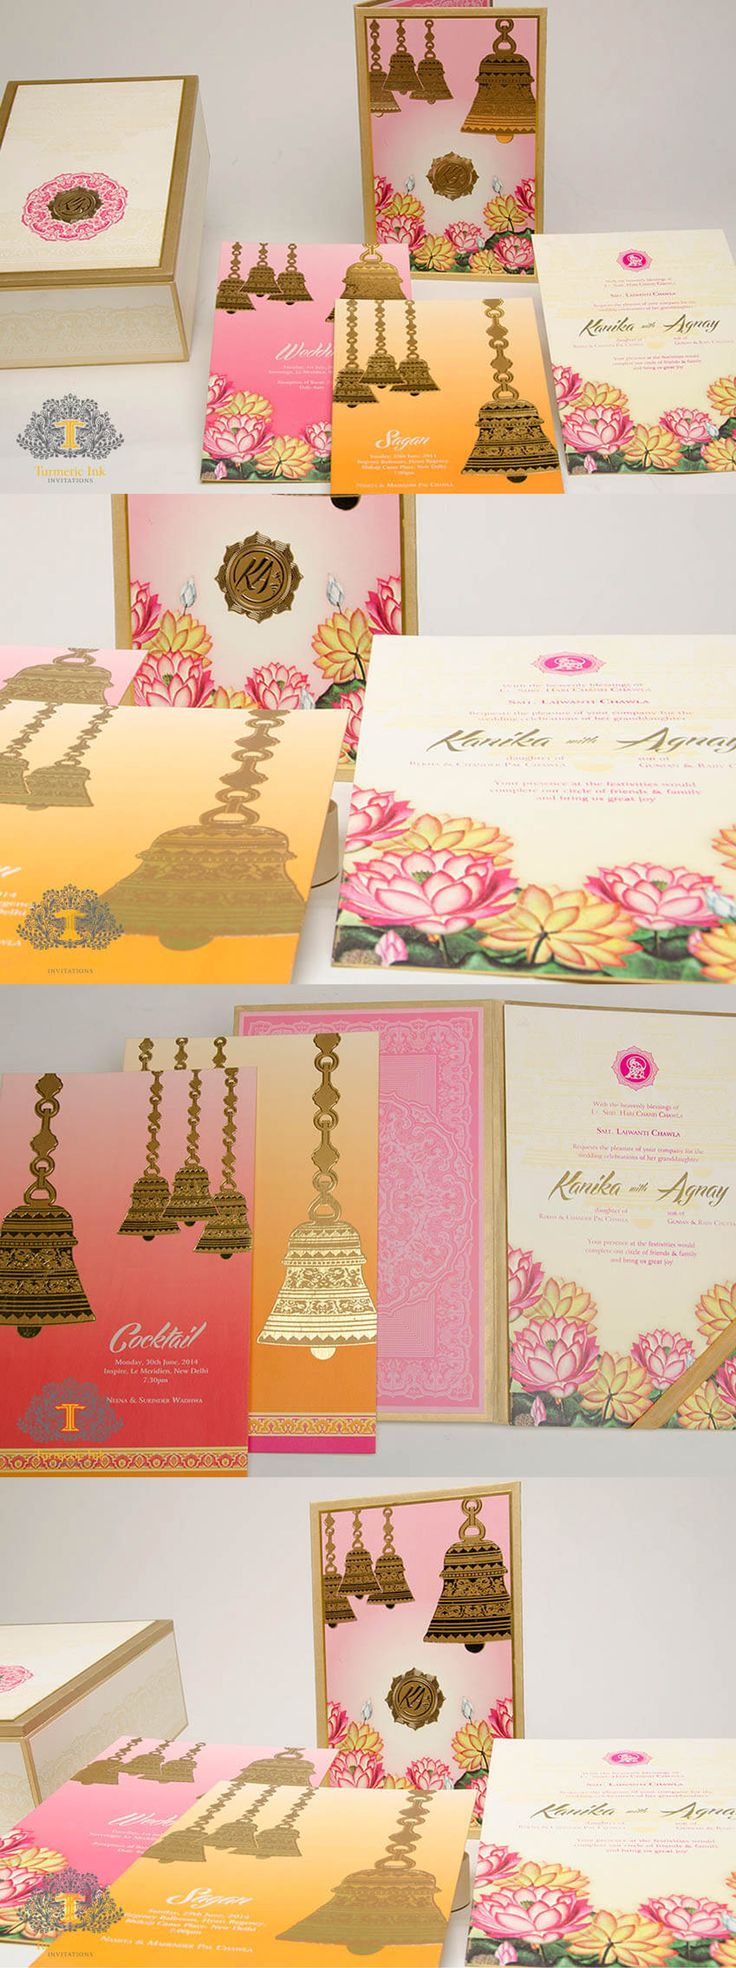 29 Best E Card Images On Pinterest Hindu Weddings Diy Jewelry And